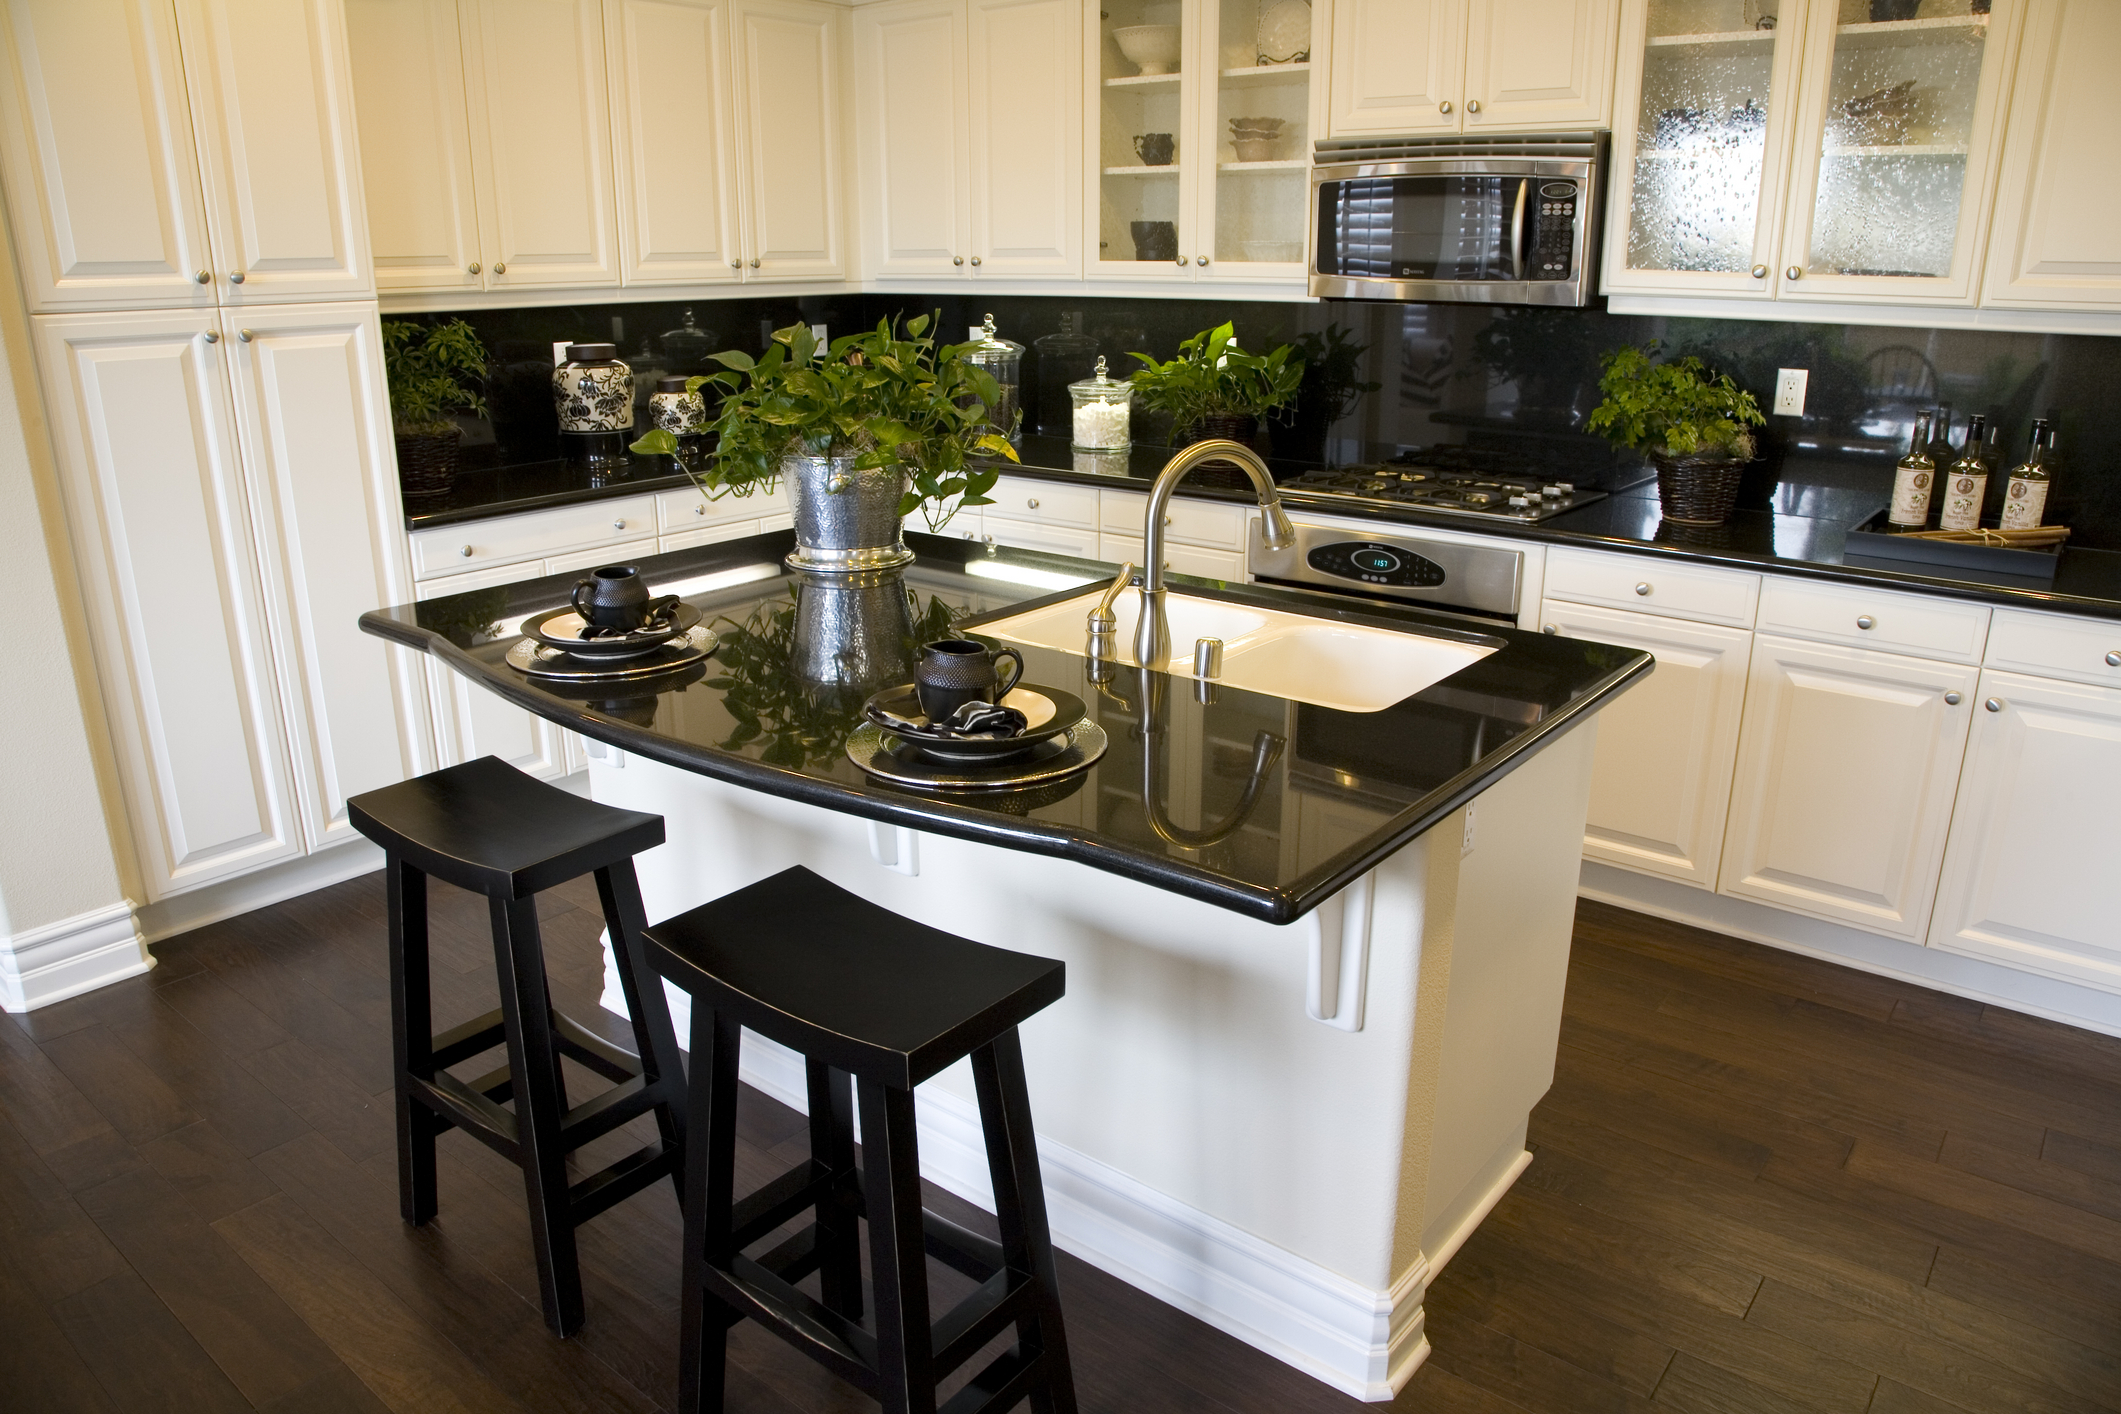 Cabinet refacing carefree home pros for Cost to update kitchen cabinets and countertops